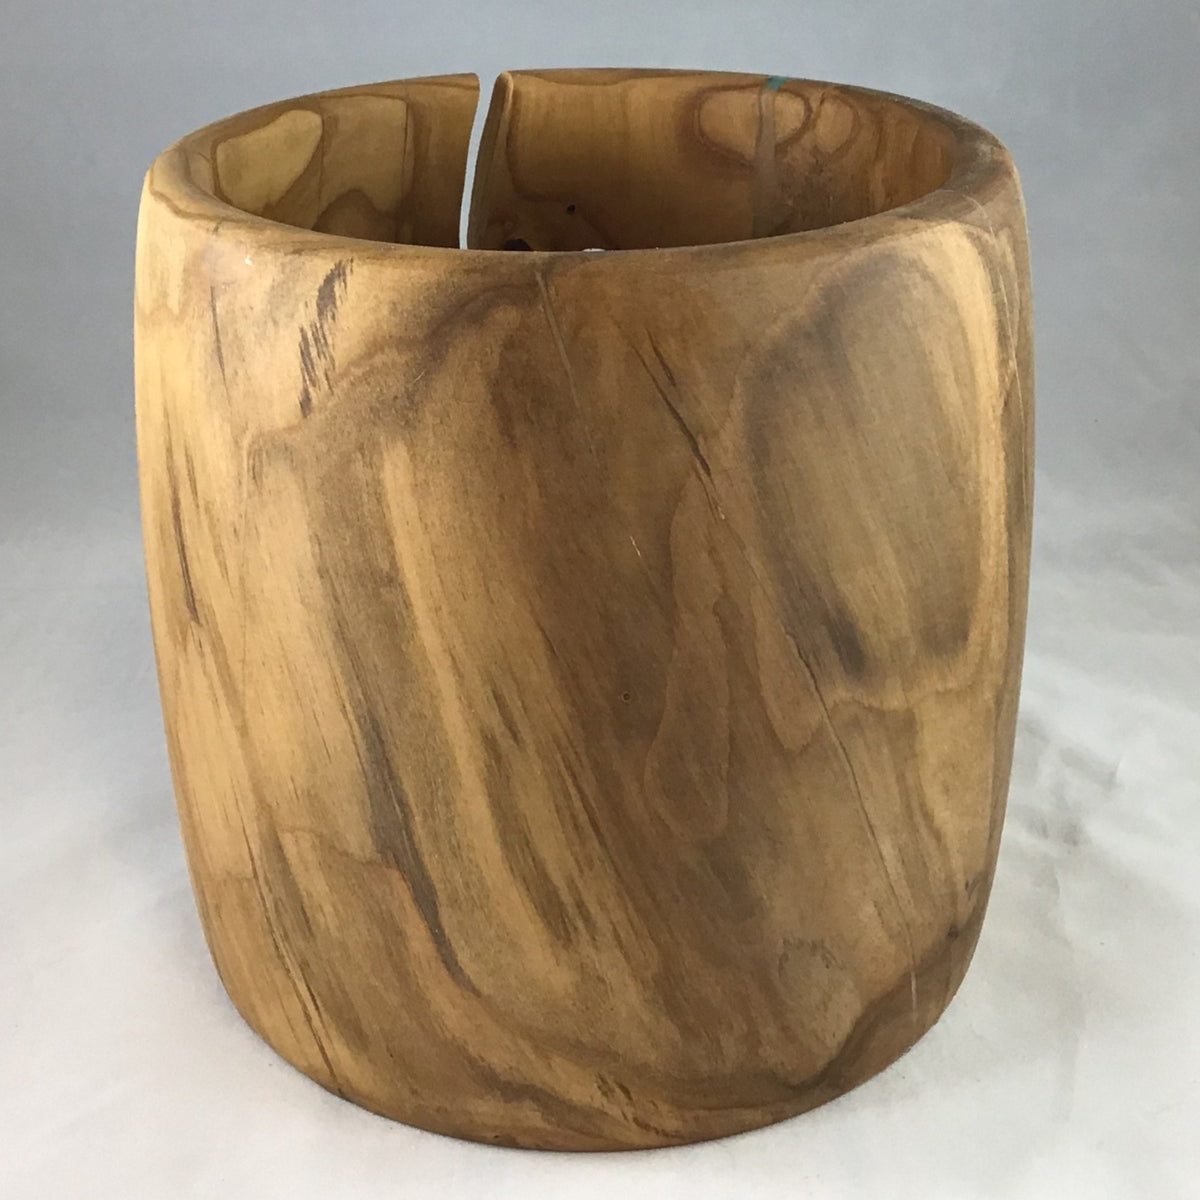 A wooden yarn bowl made from Apricot wood against a white backdrop